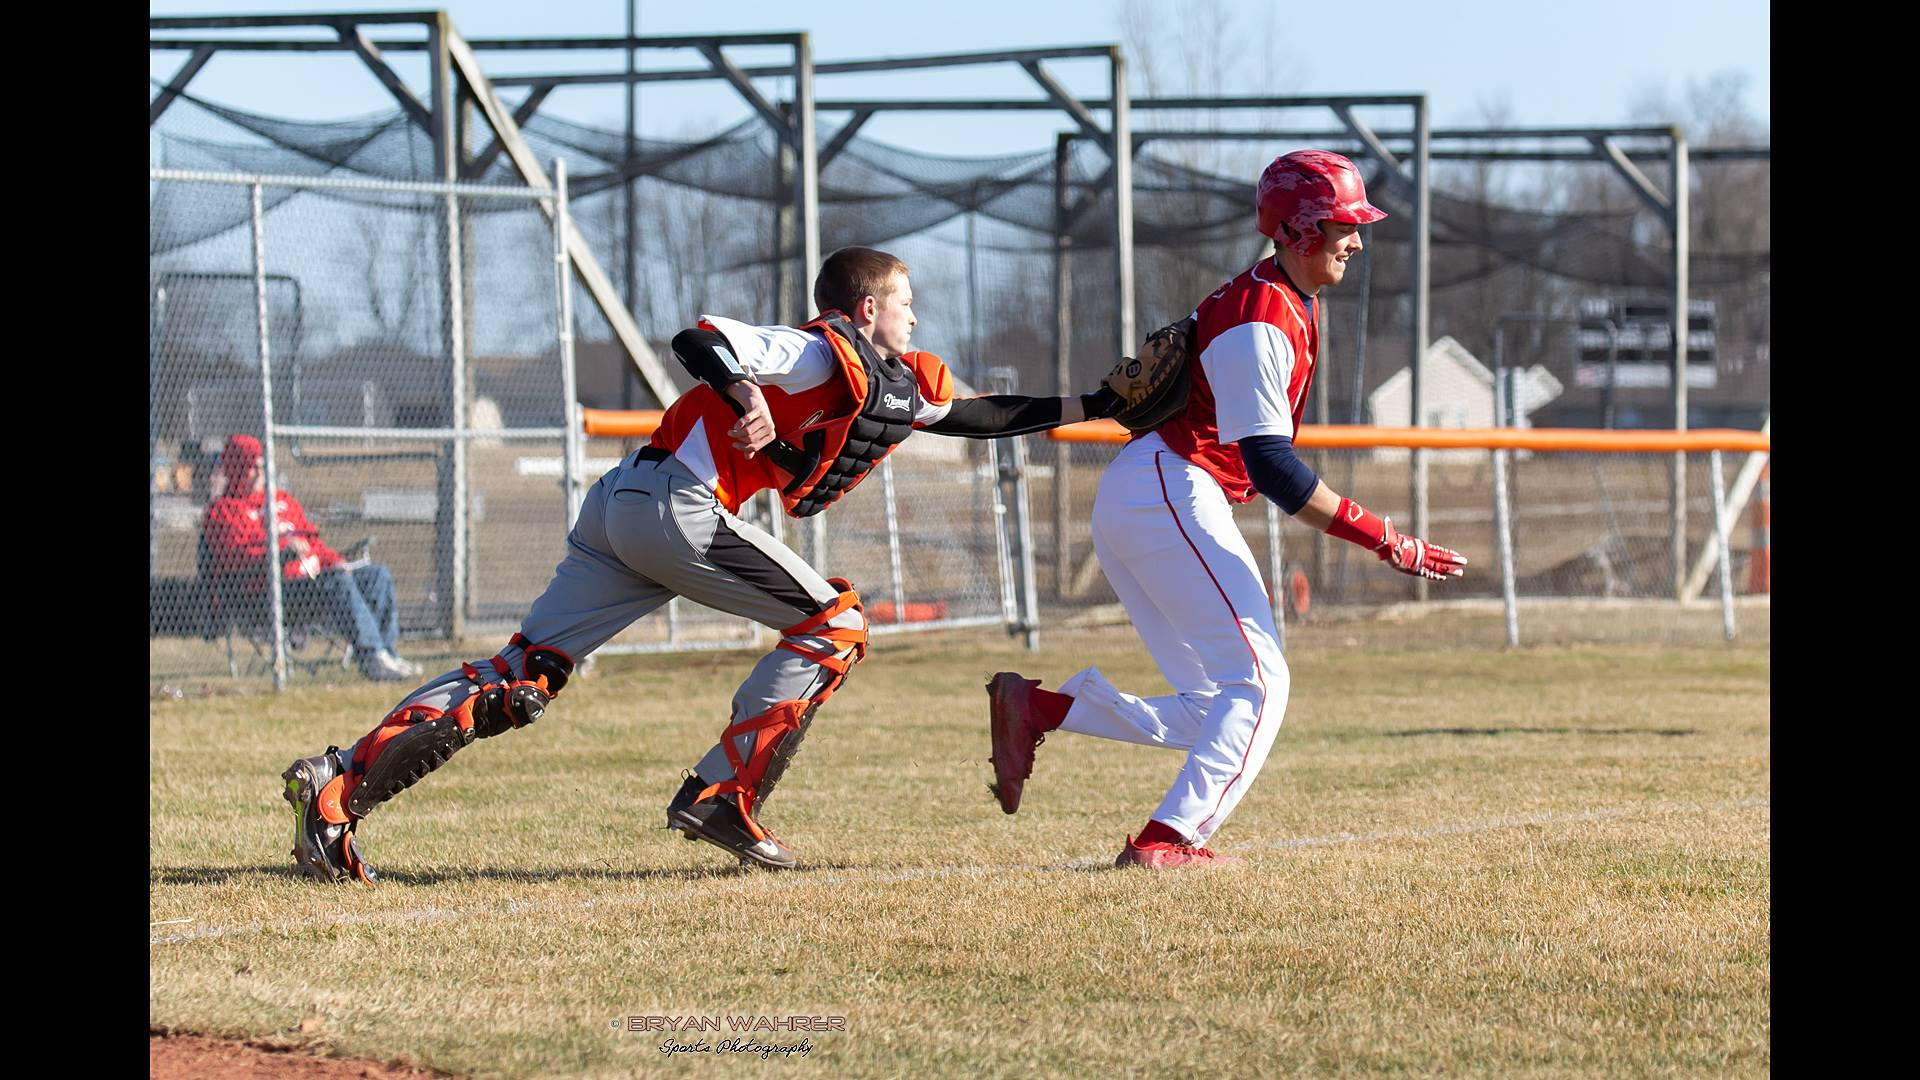 Catcher tagging runner out